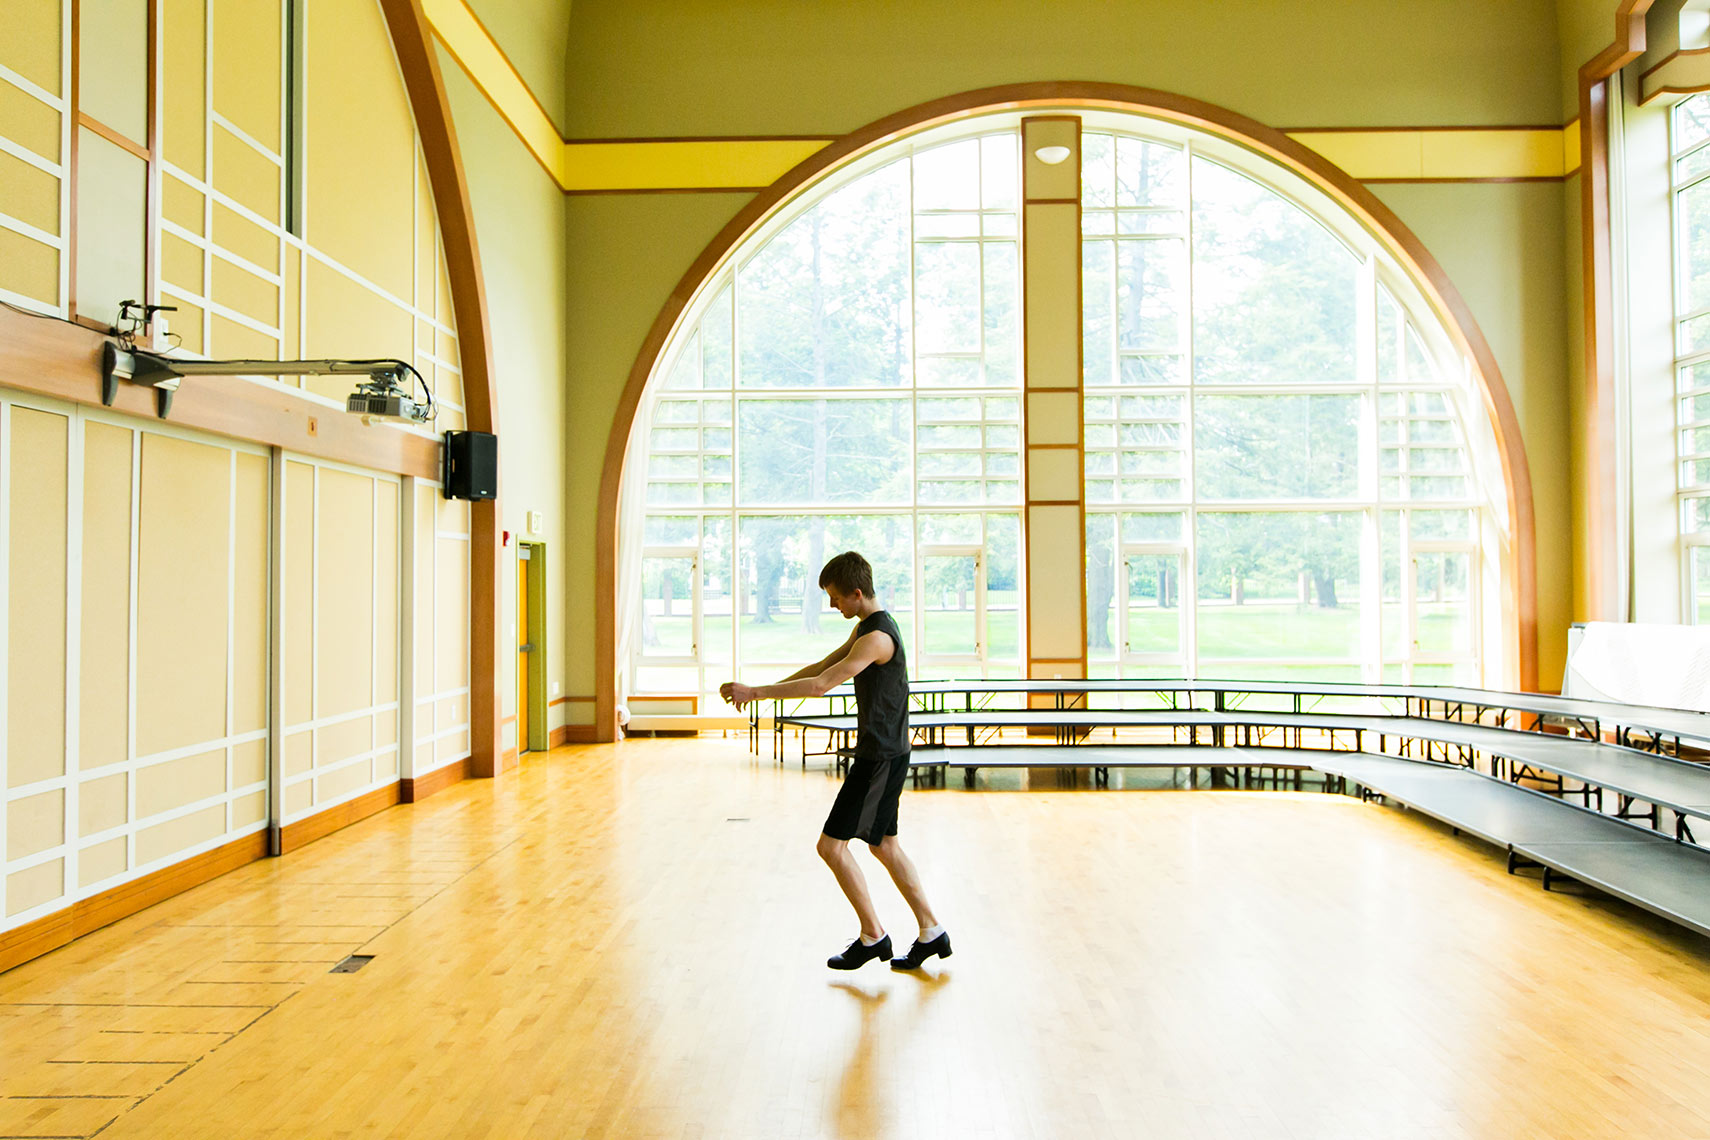 Lawrenceville School boy dance studio Michael Branscom Photography.